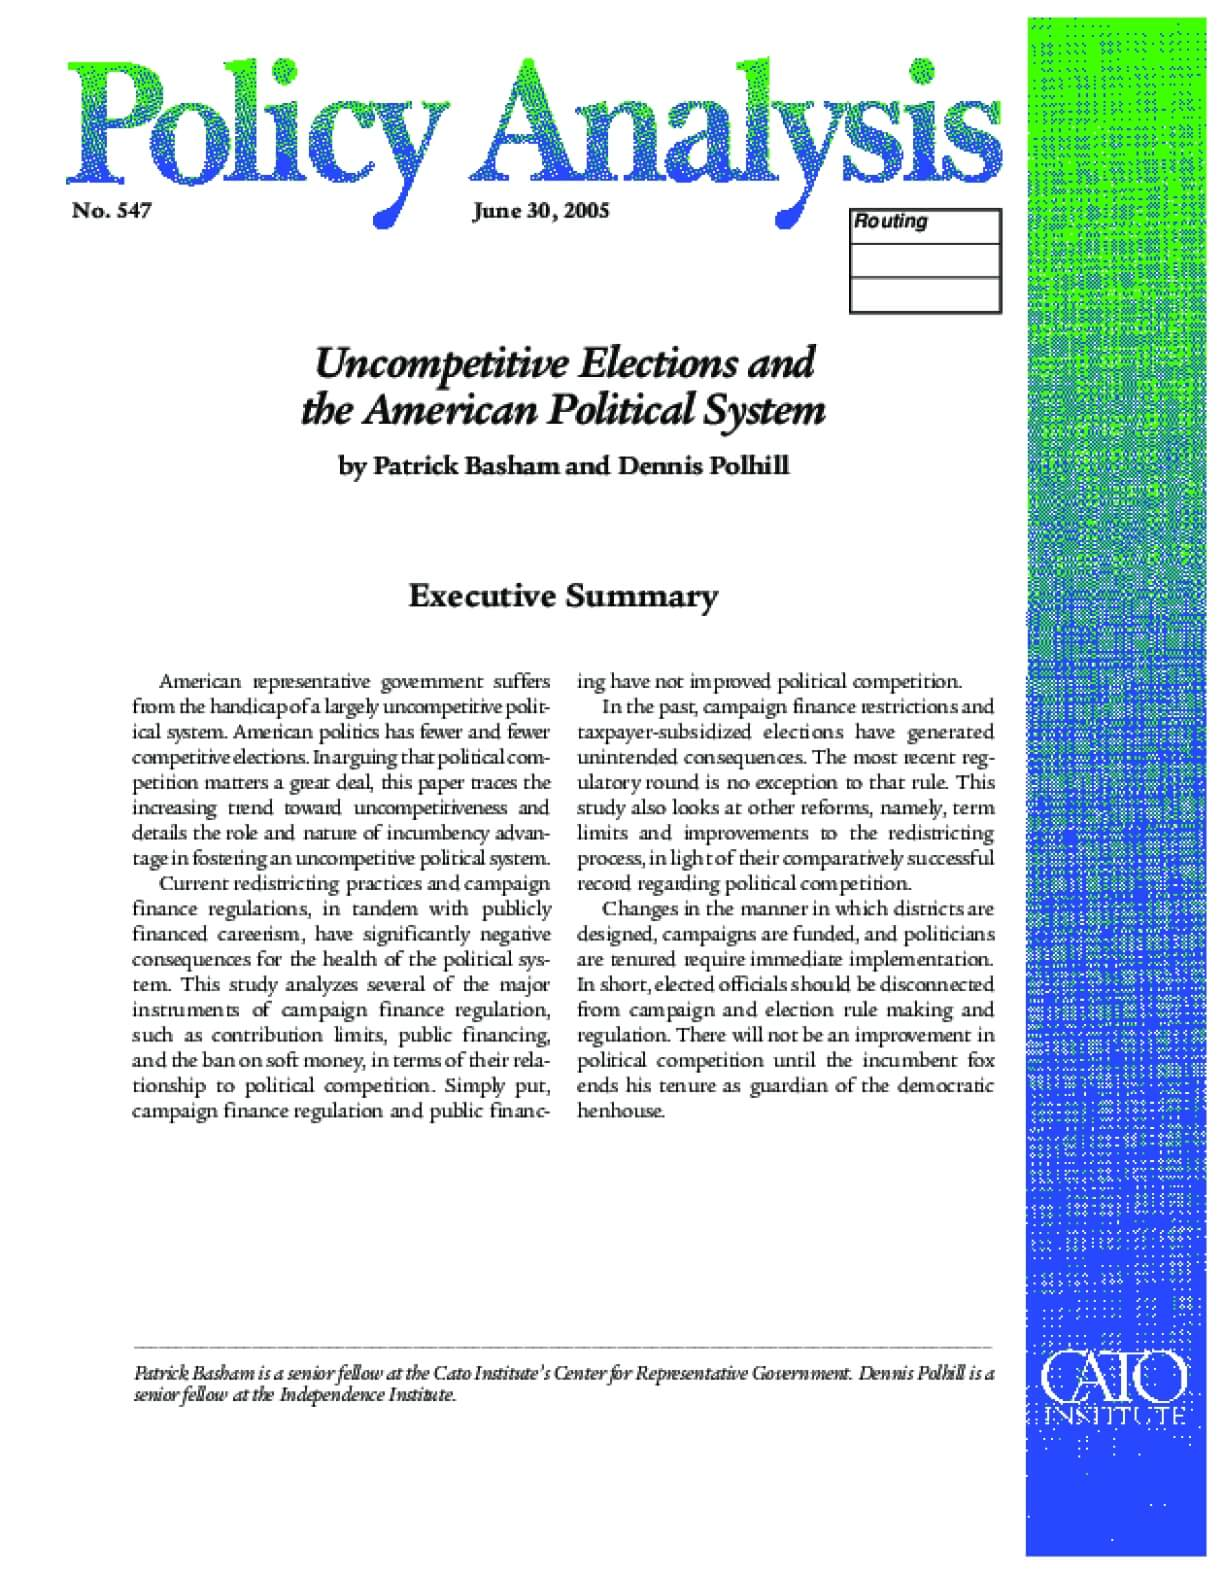 Uncompetitive Elections and the American Political System